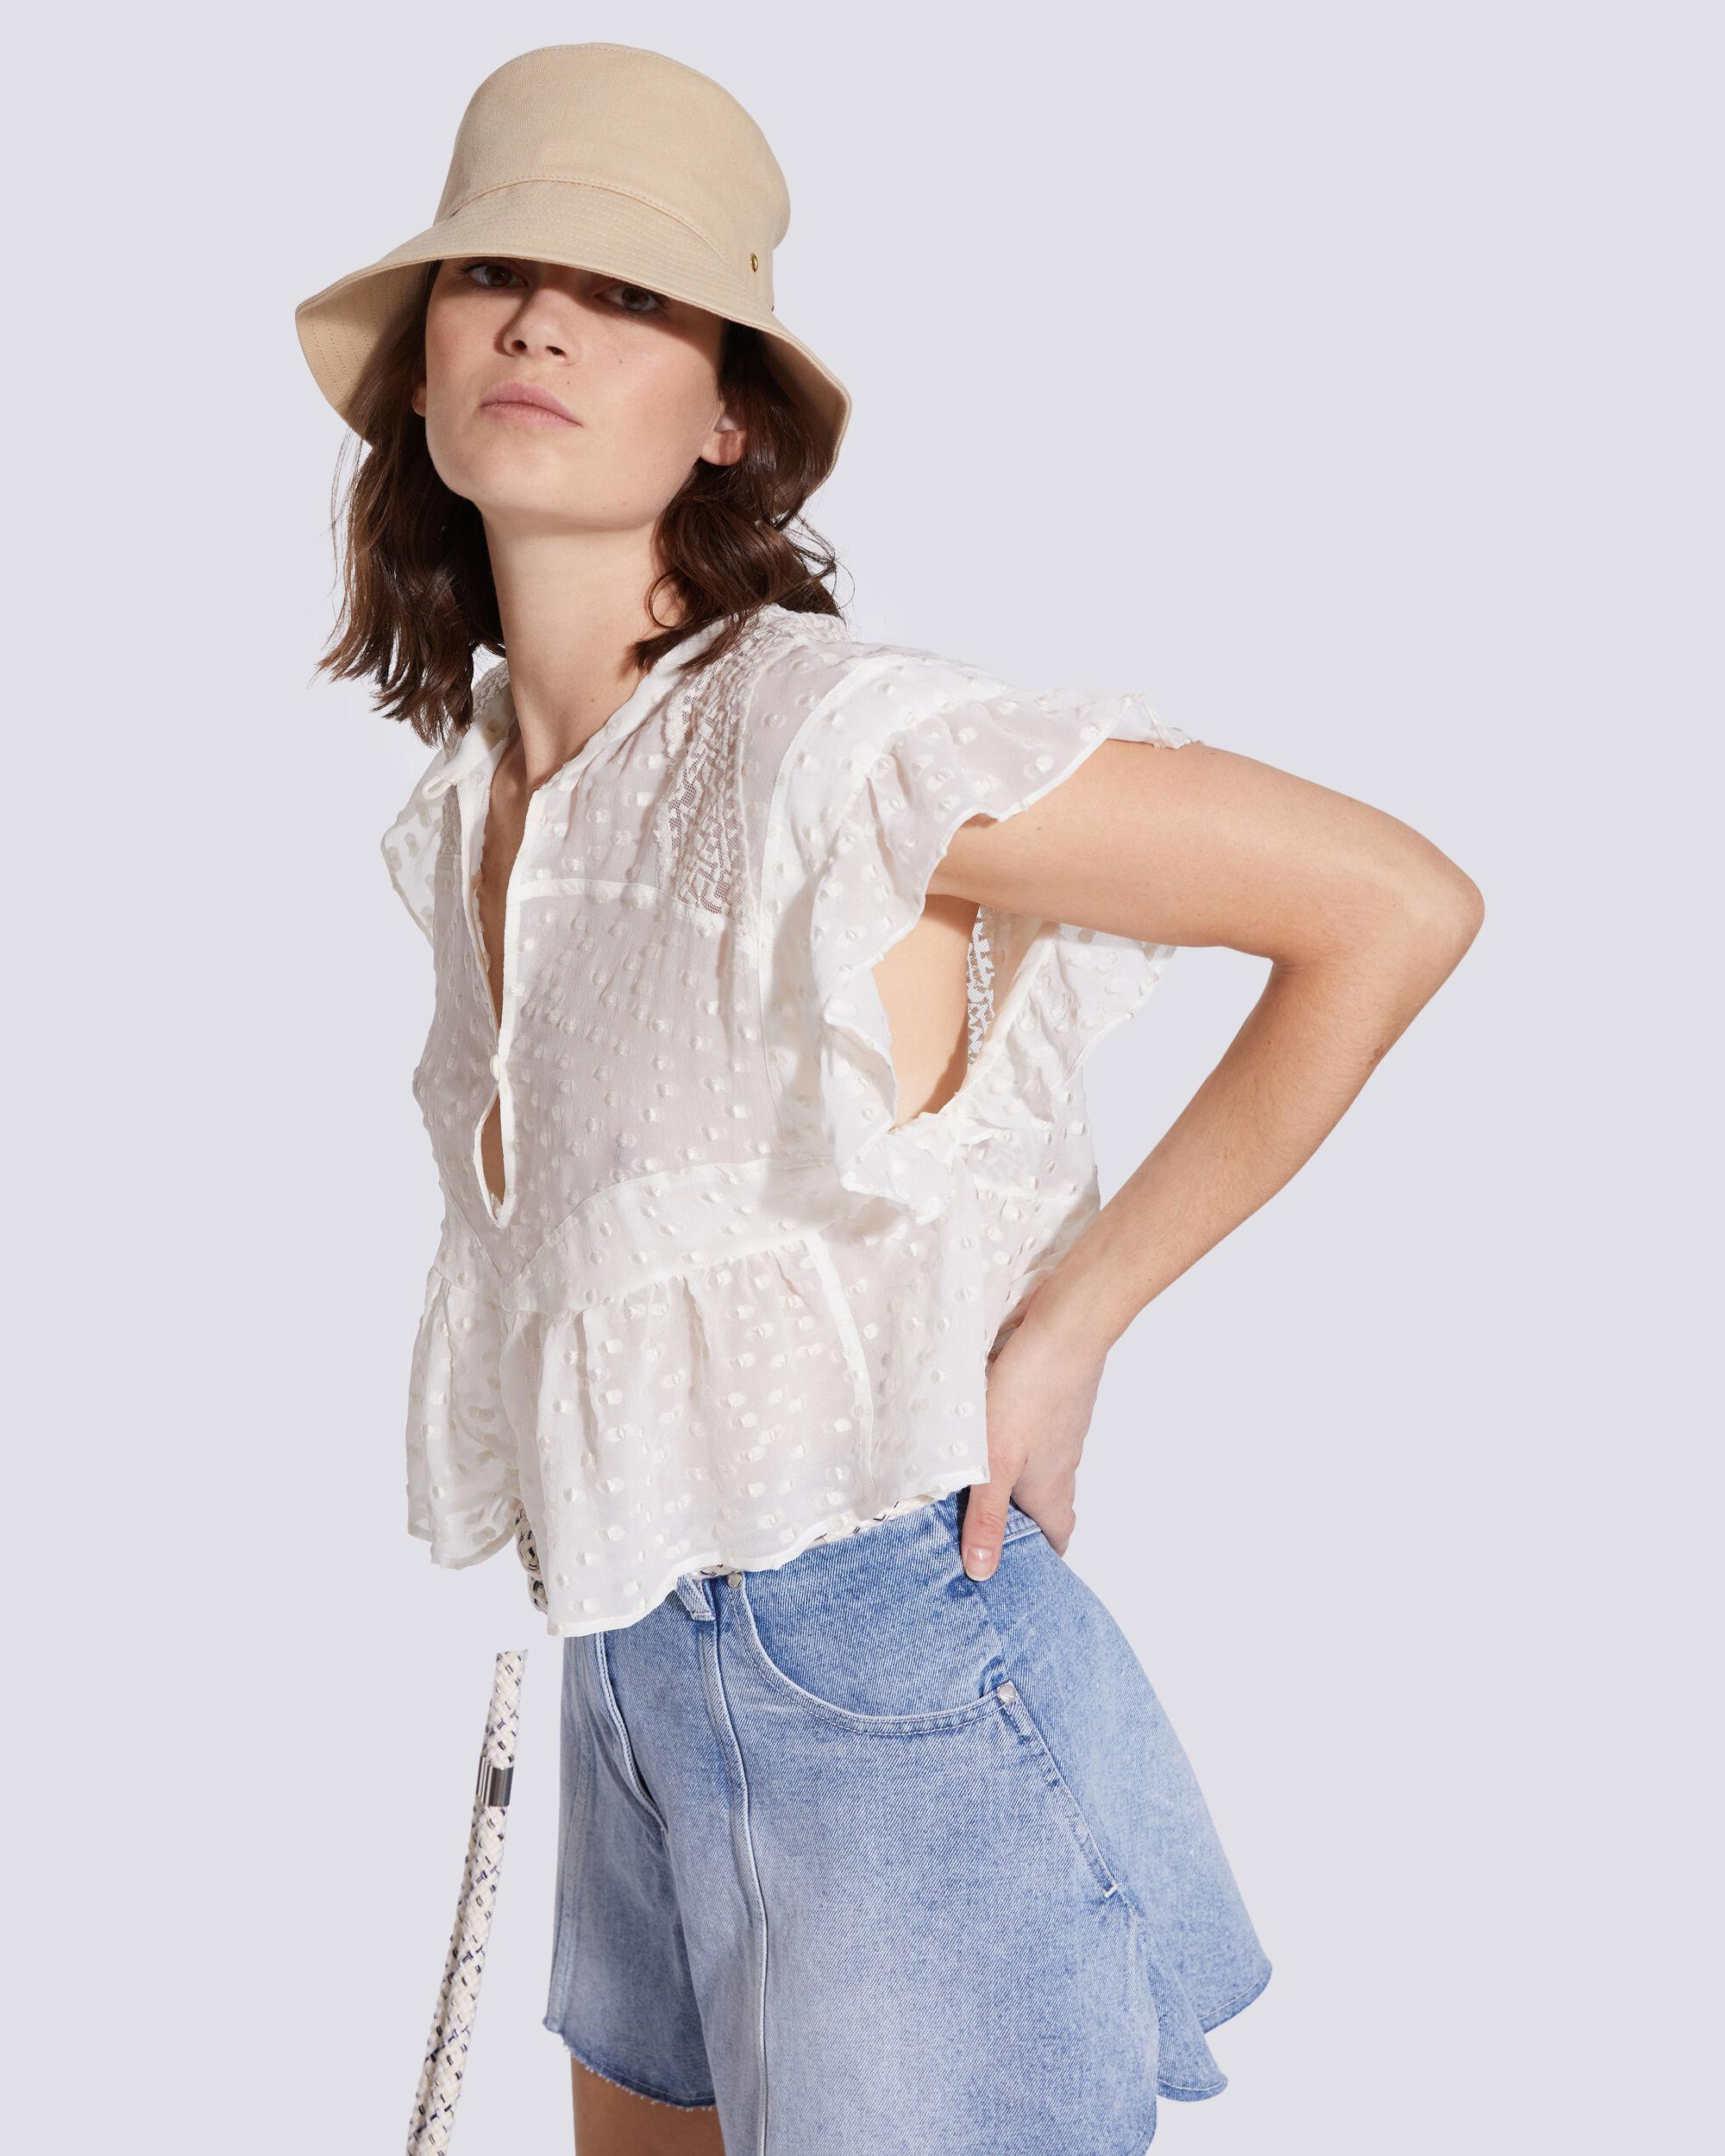 HOS BUTTON UP EMBROIDERED BLOUSE TOP